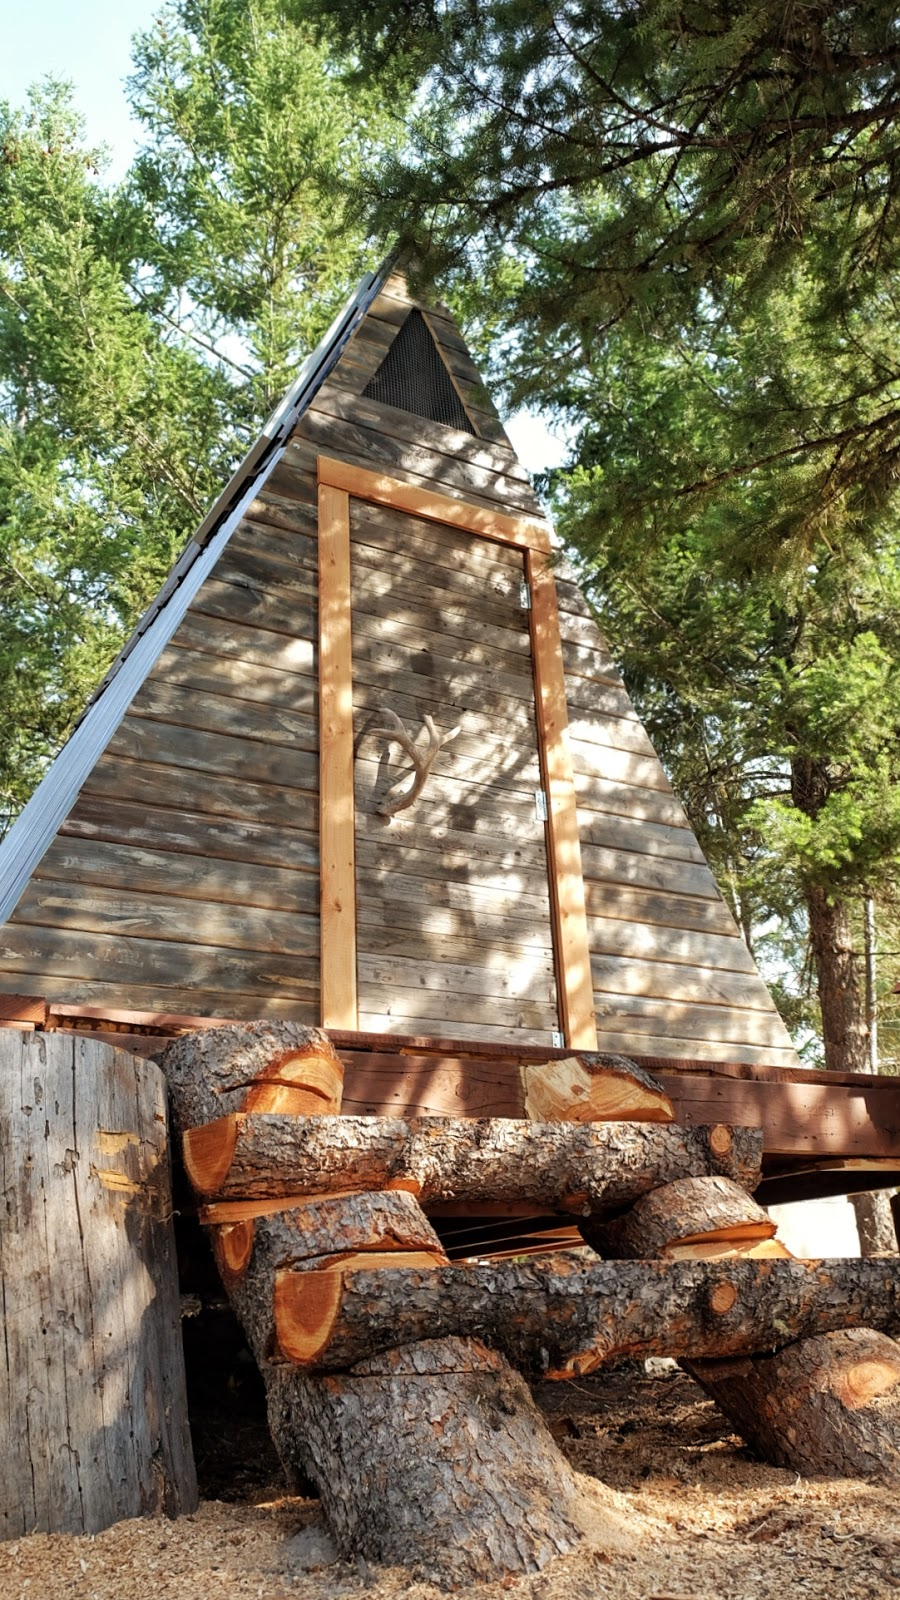 Tiny house town a frame cabin that cost just 700 to build for Cost to build small cottage